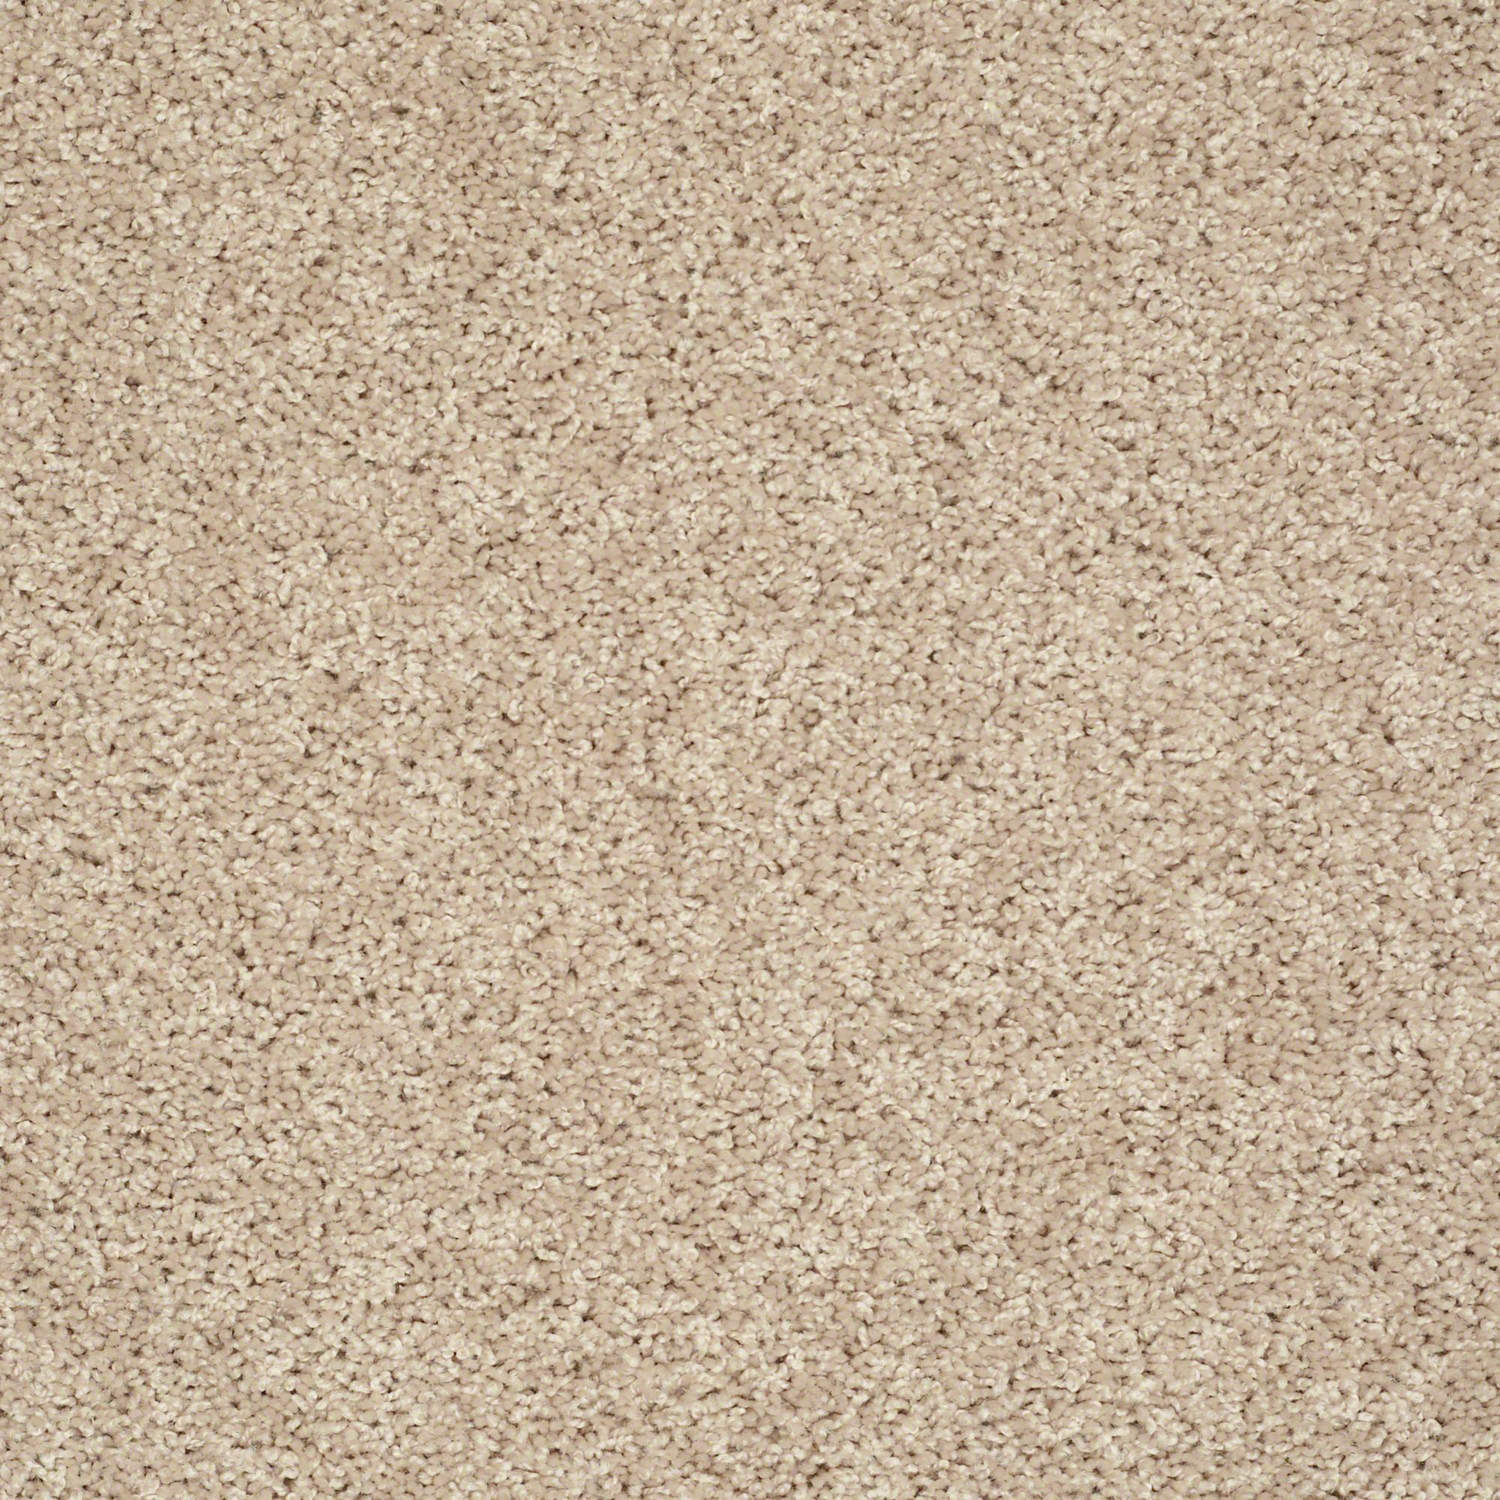 carpet buying guide face weight